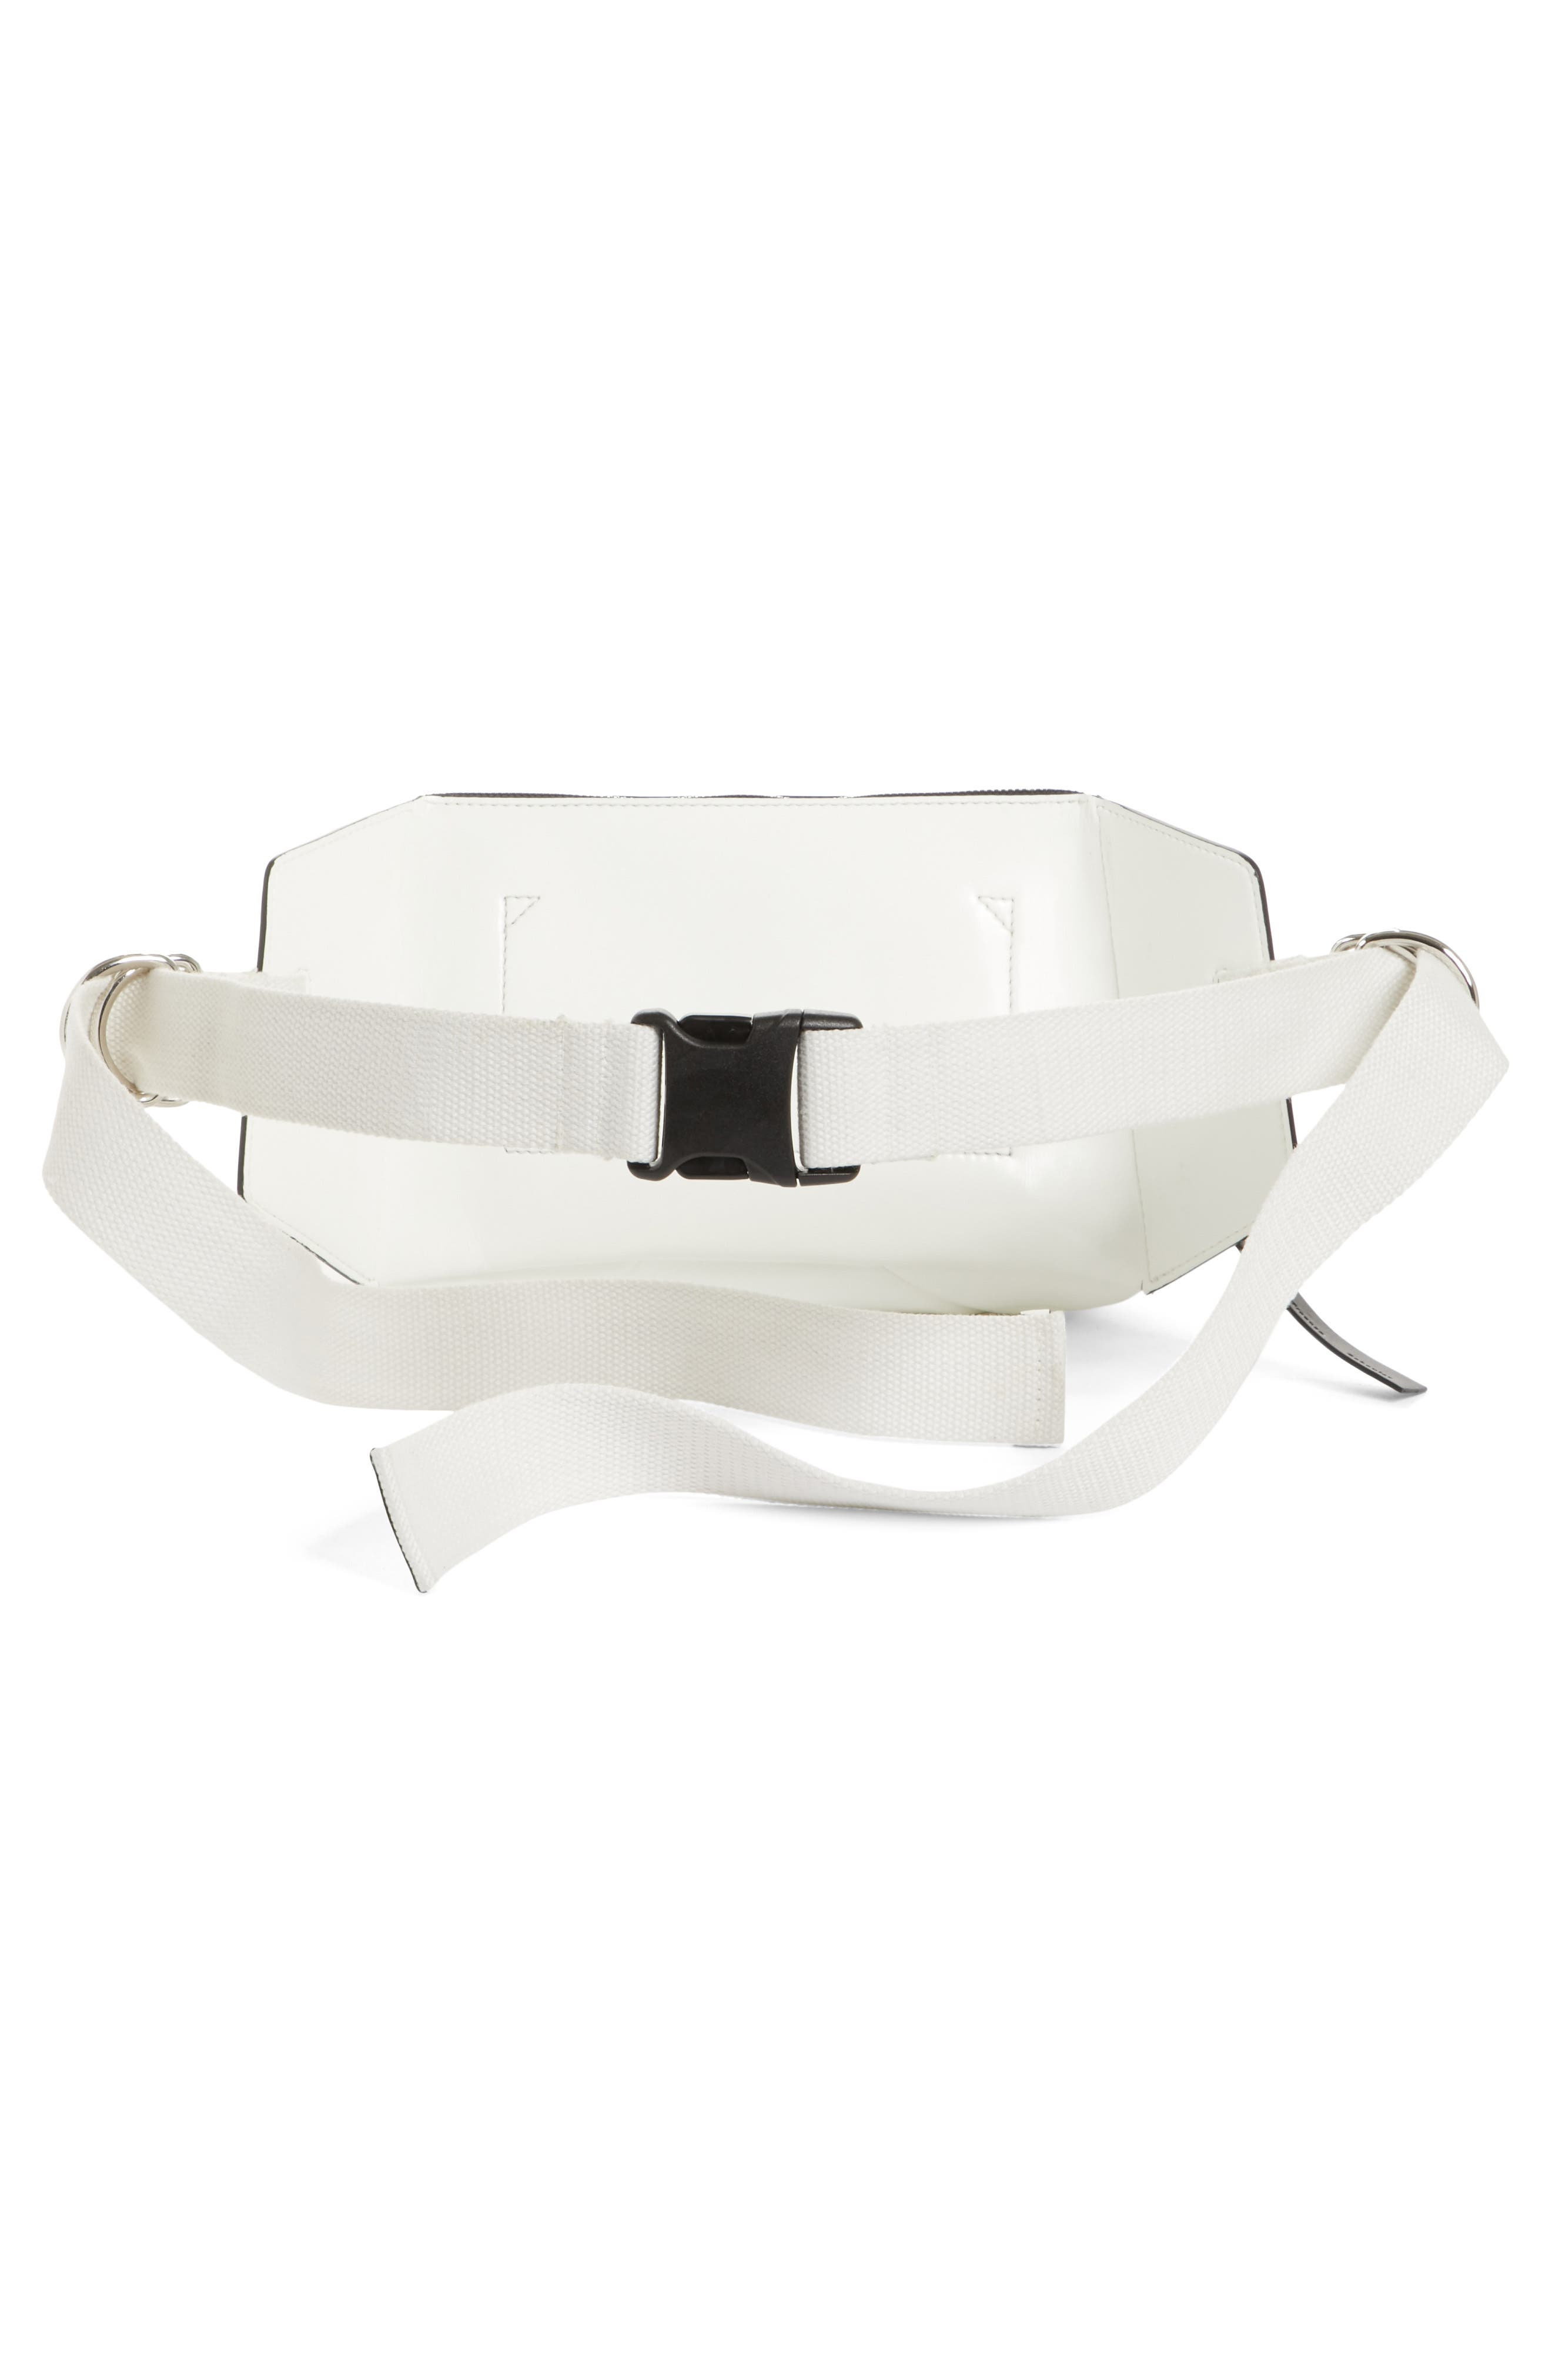 Alternate Image 3  - Proenza Schouler PSWL Faux Leather Fanny Pack